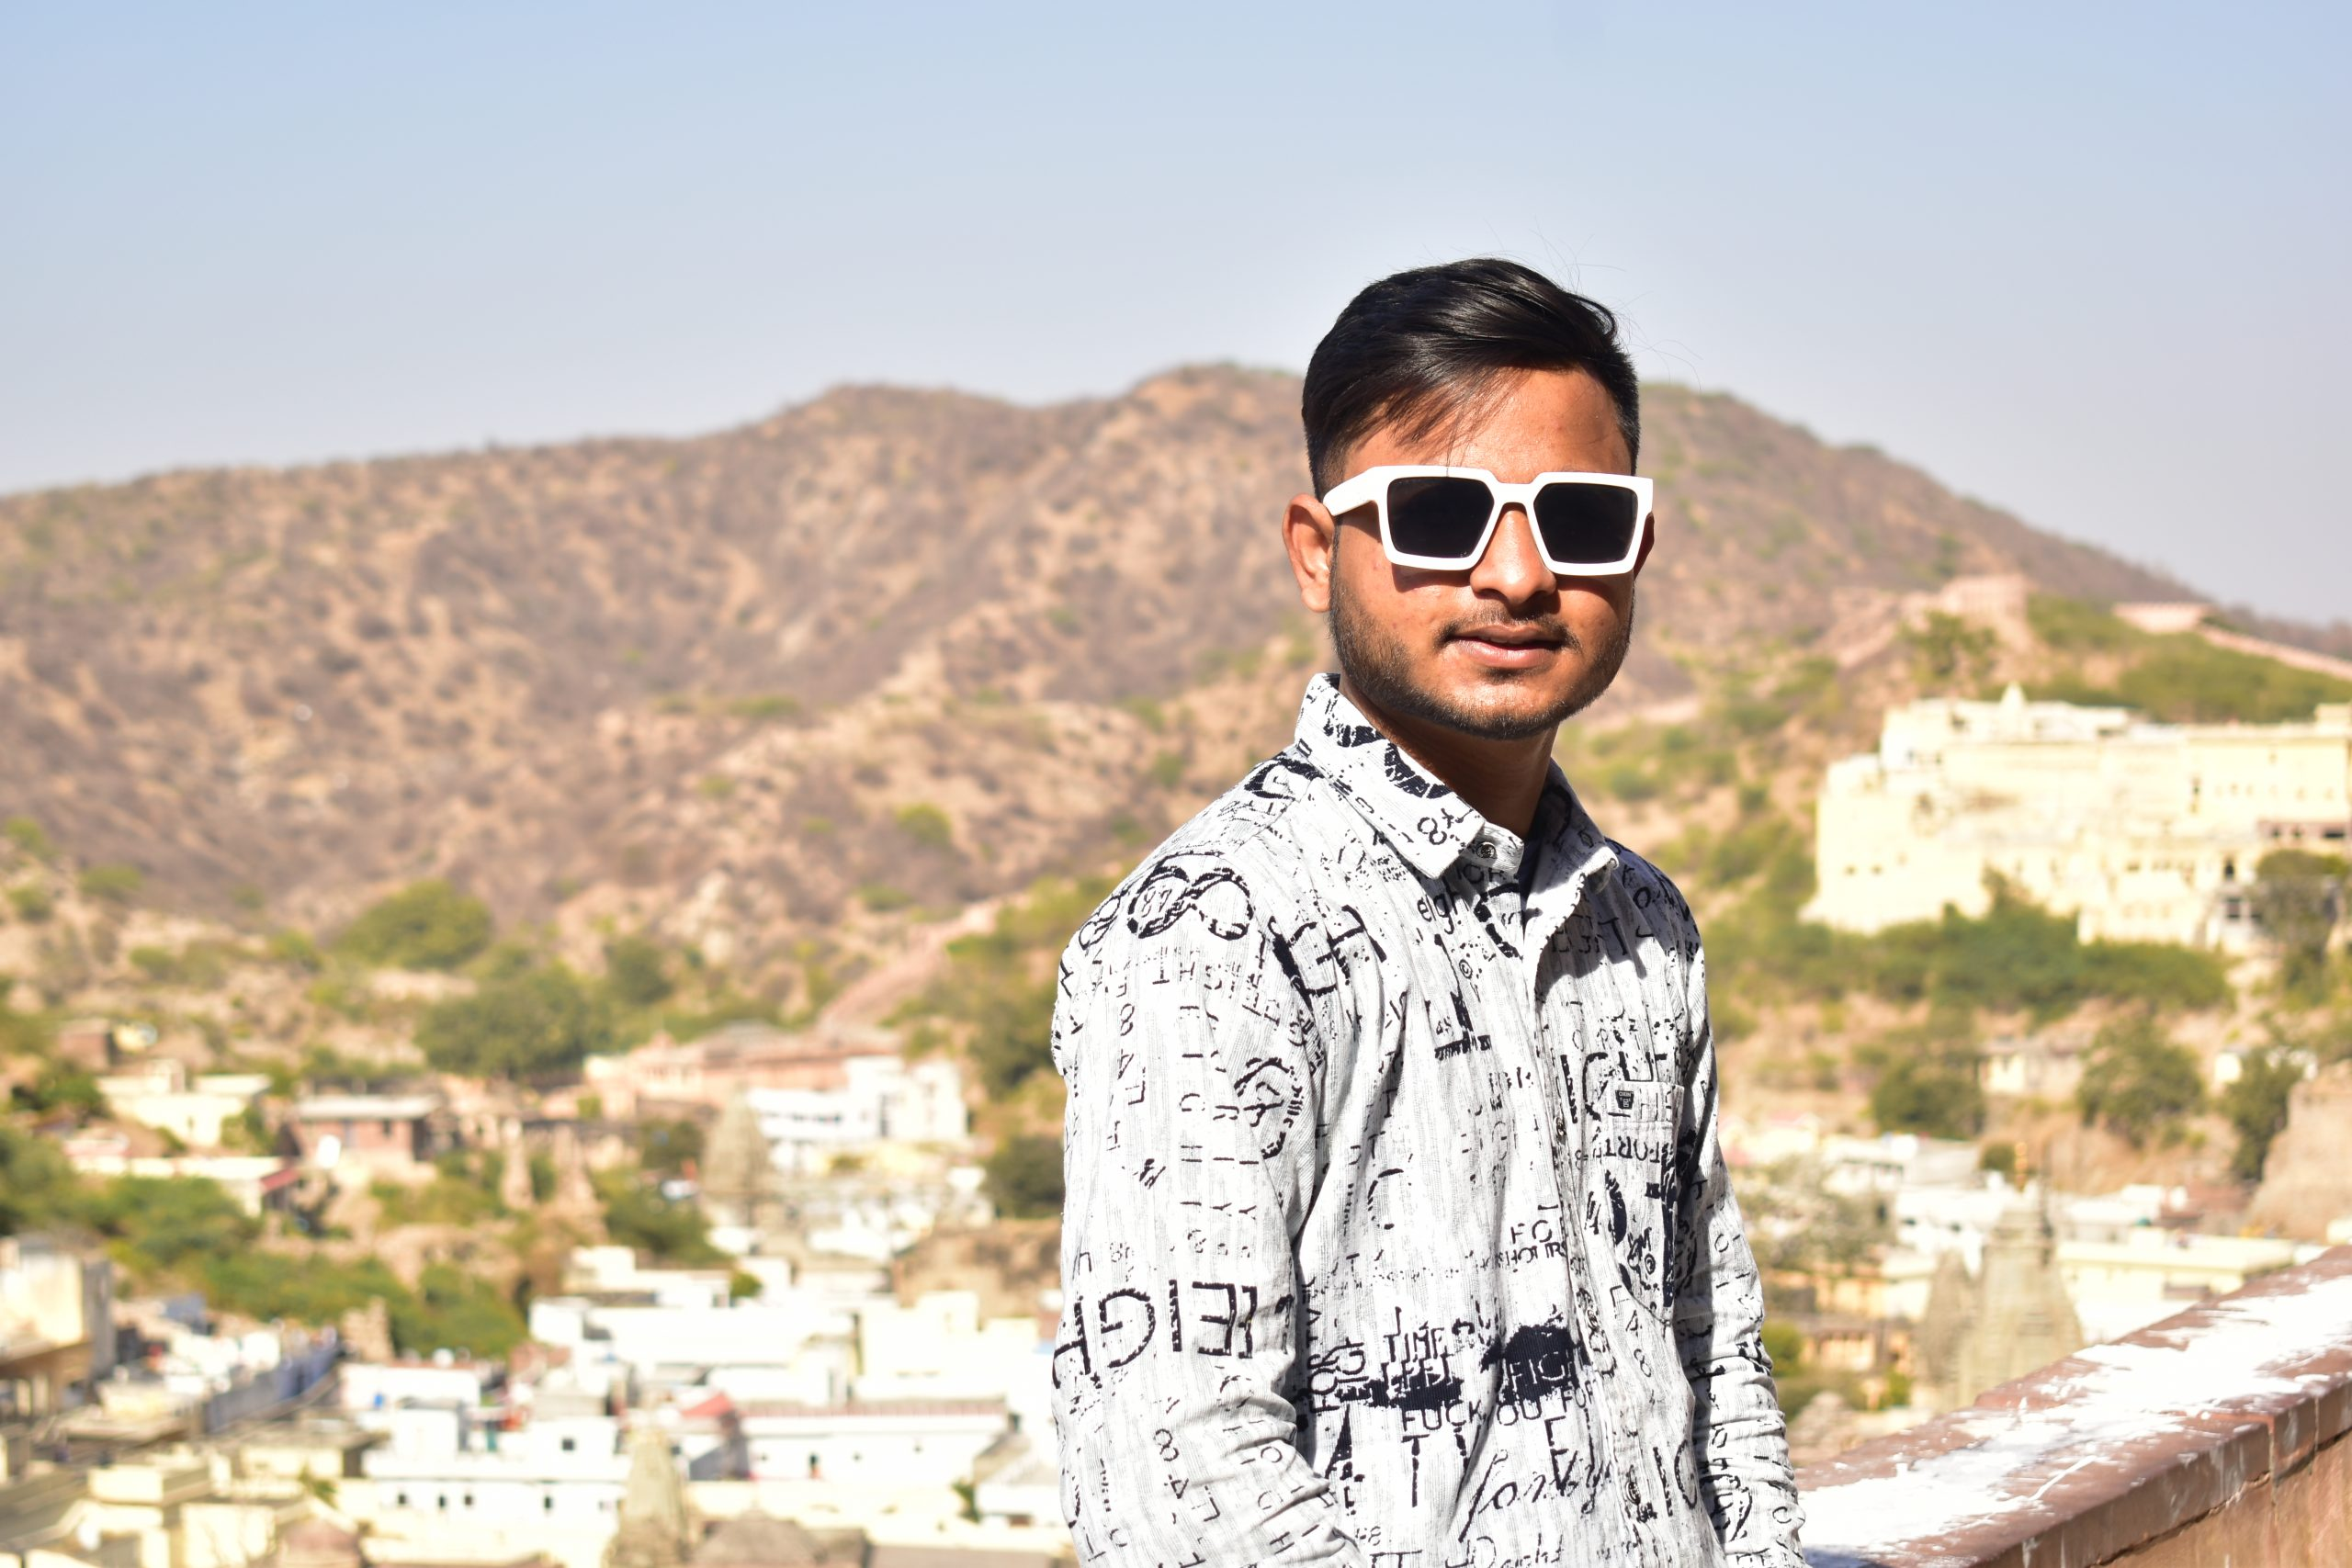 A boy at Amer fort